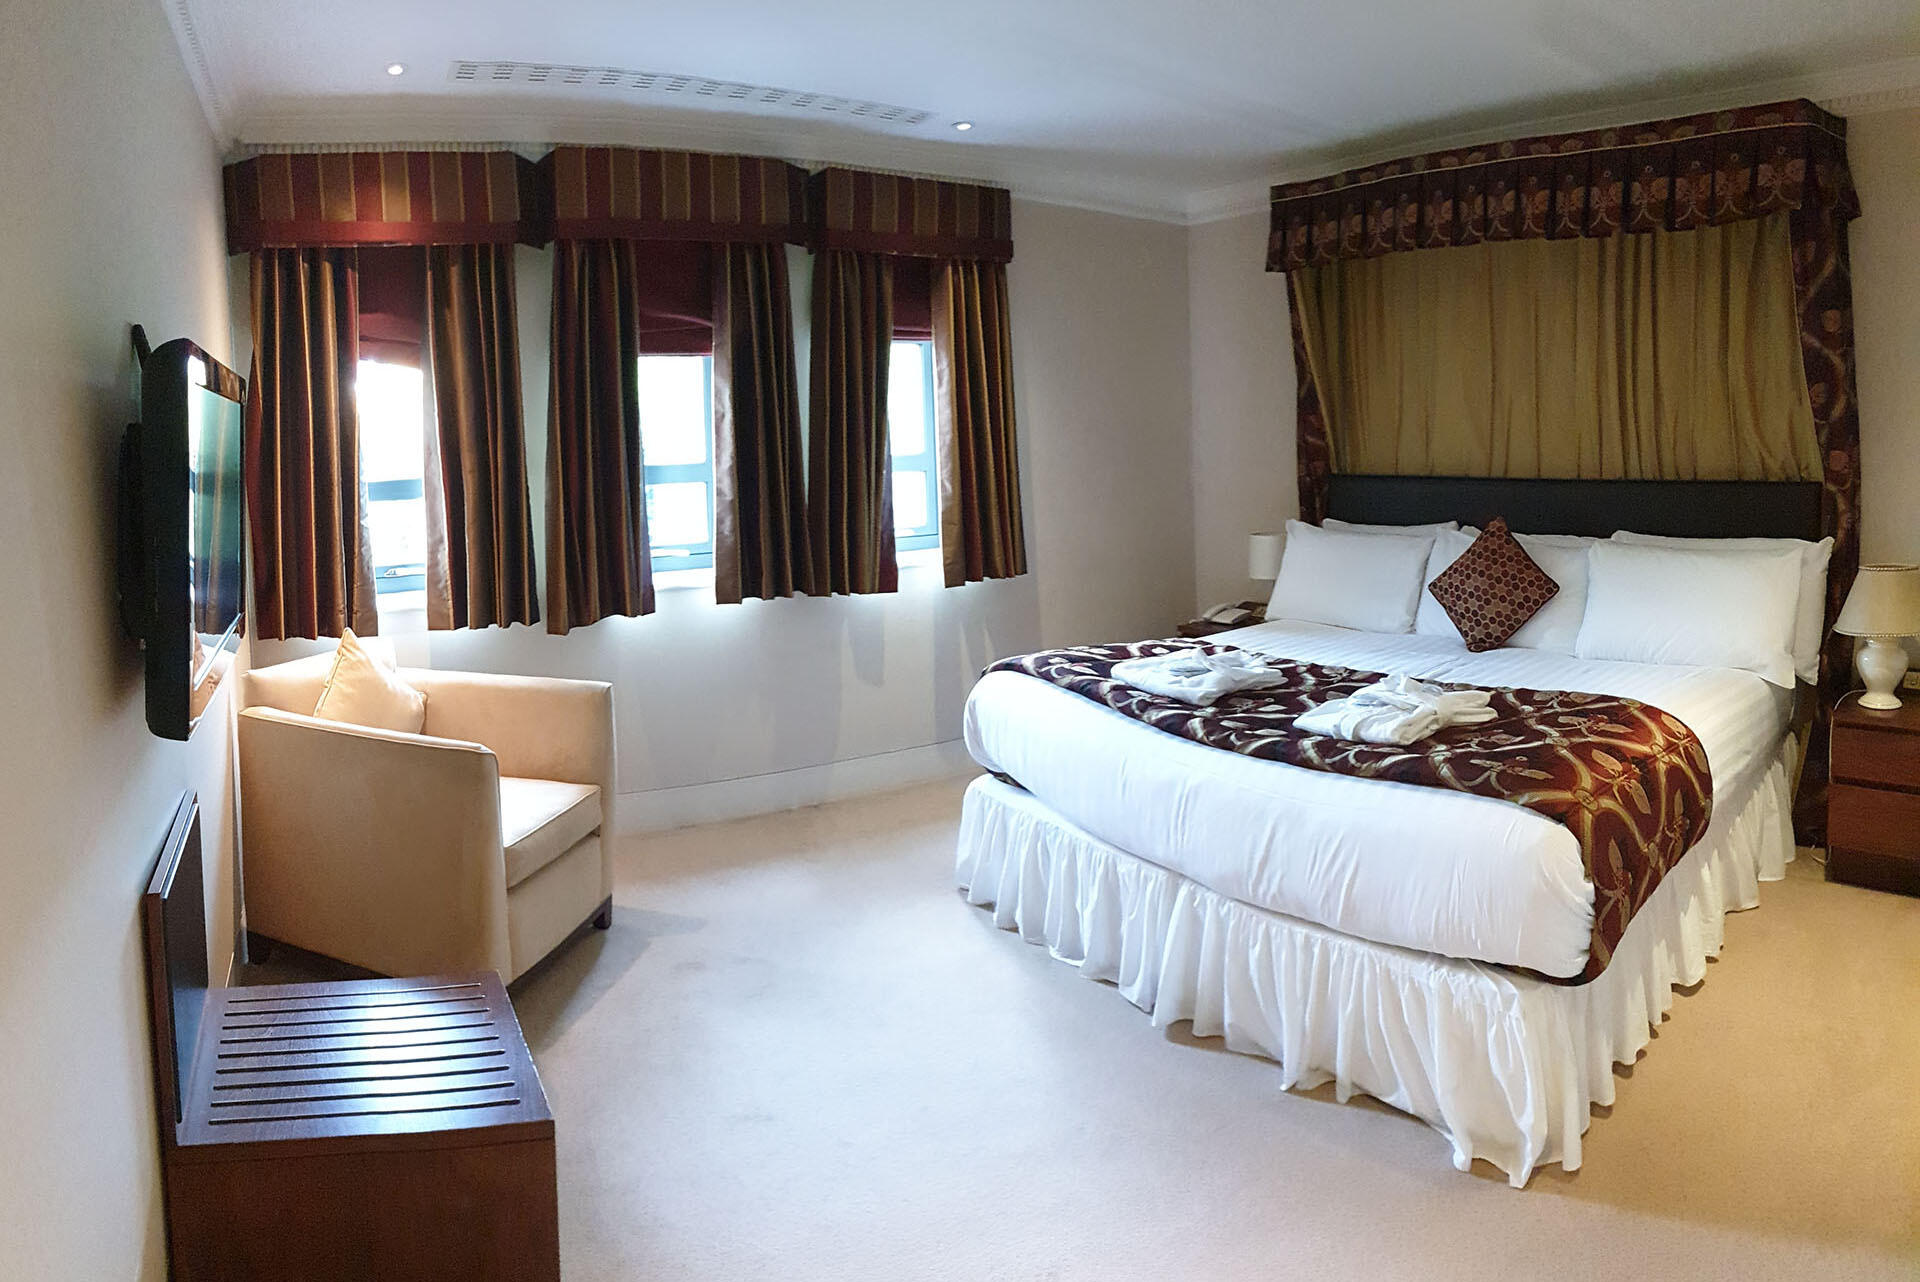 Deans Lodge Junior Suite at The Barn Hotel, Ruislip